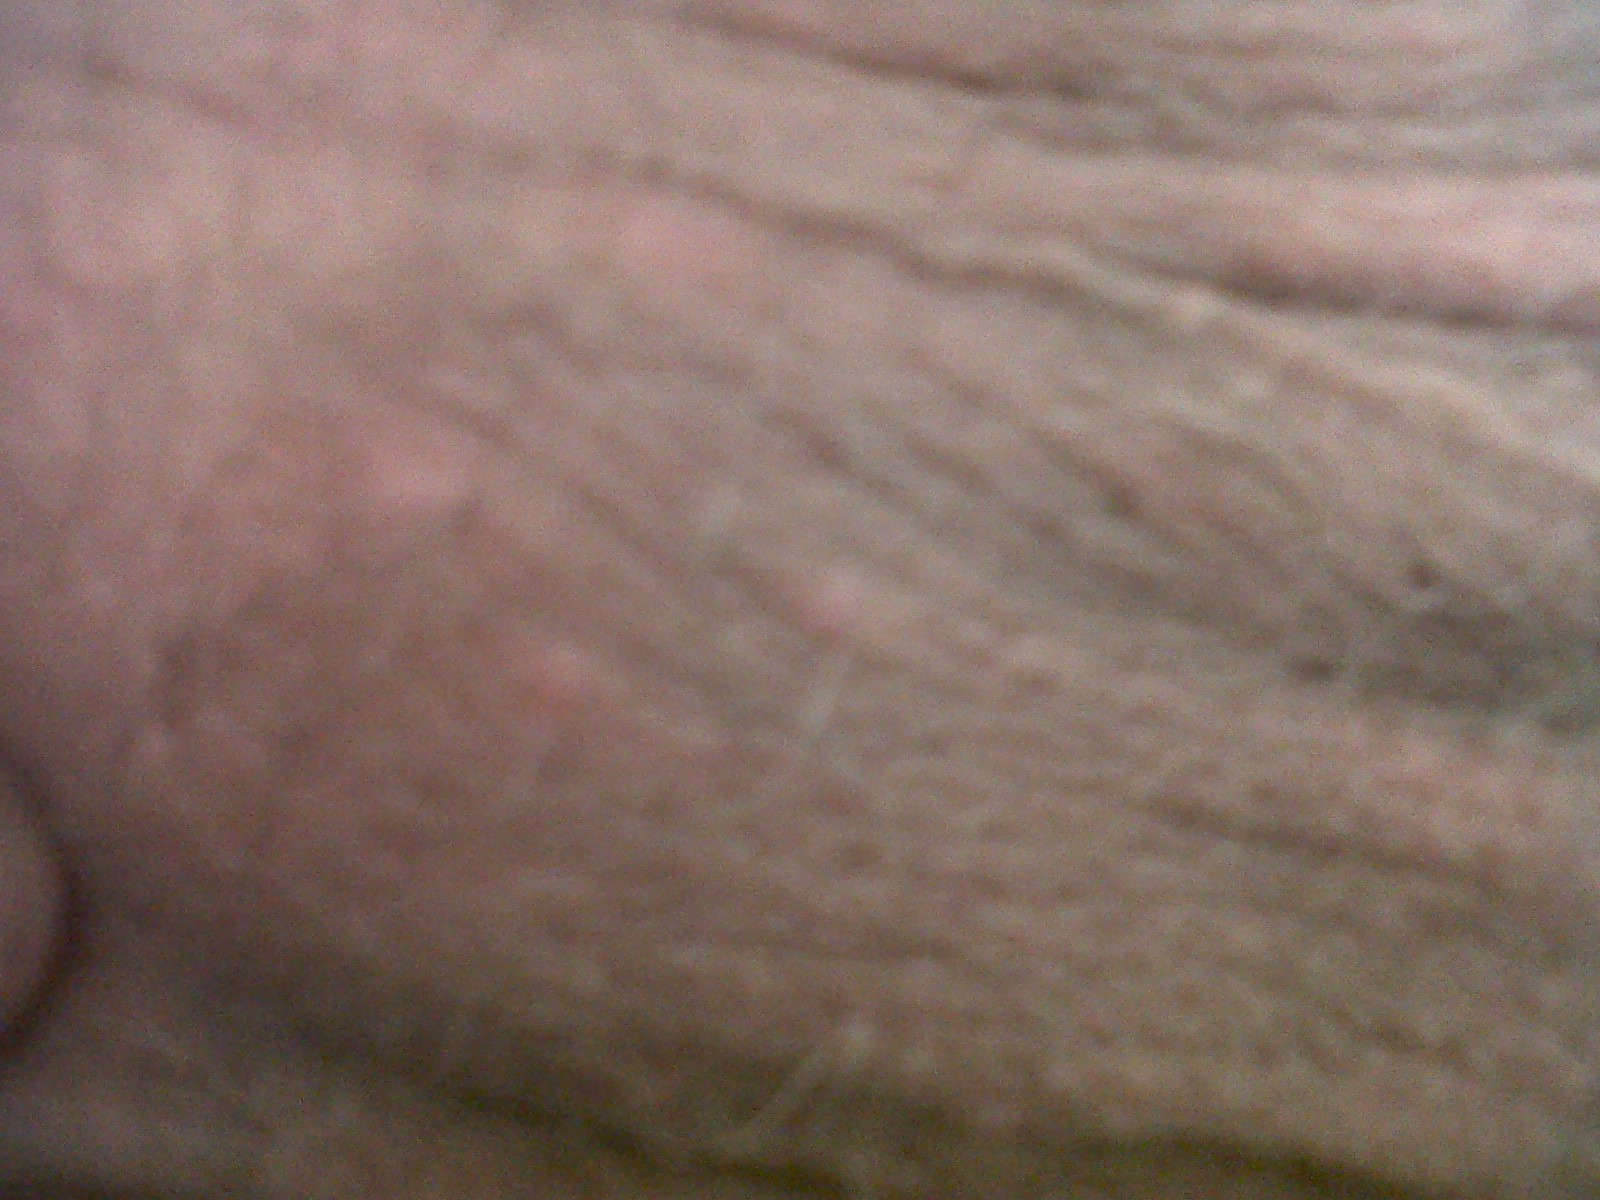 Aveage masturbation time amle